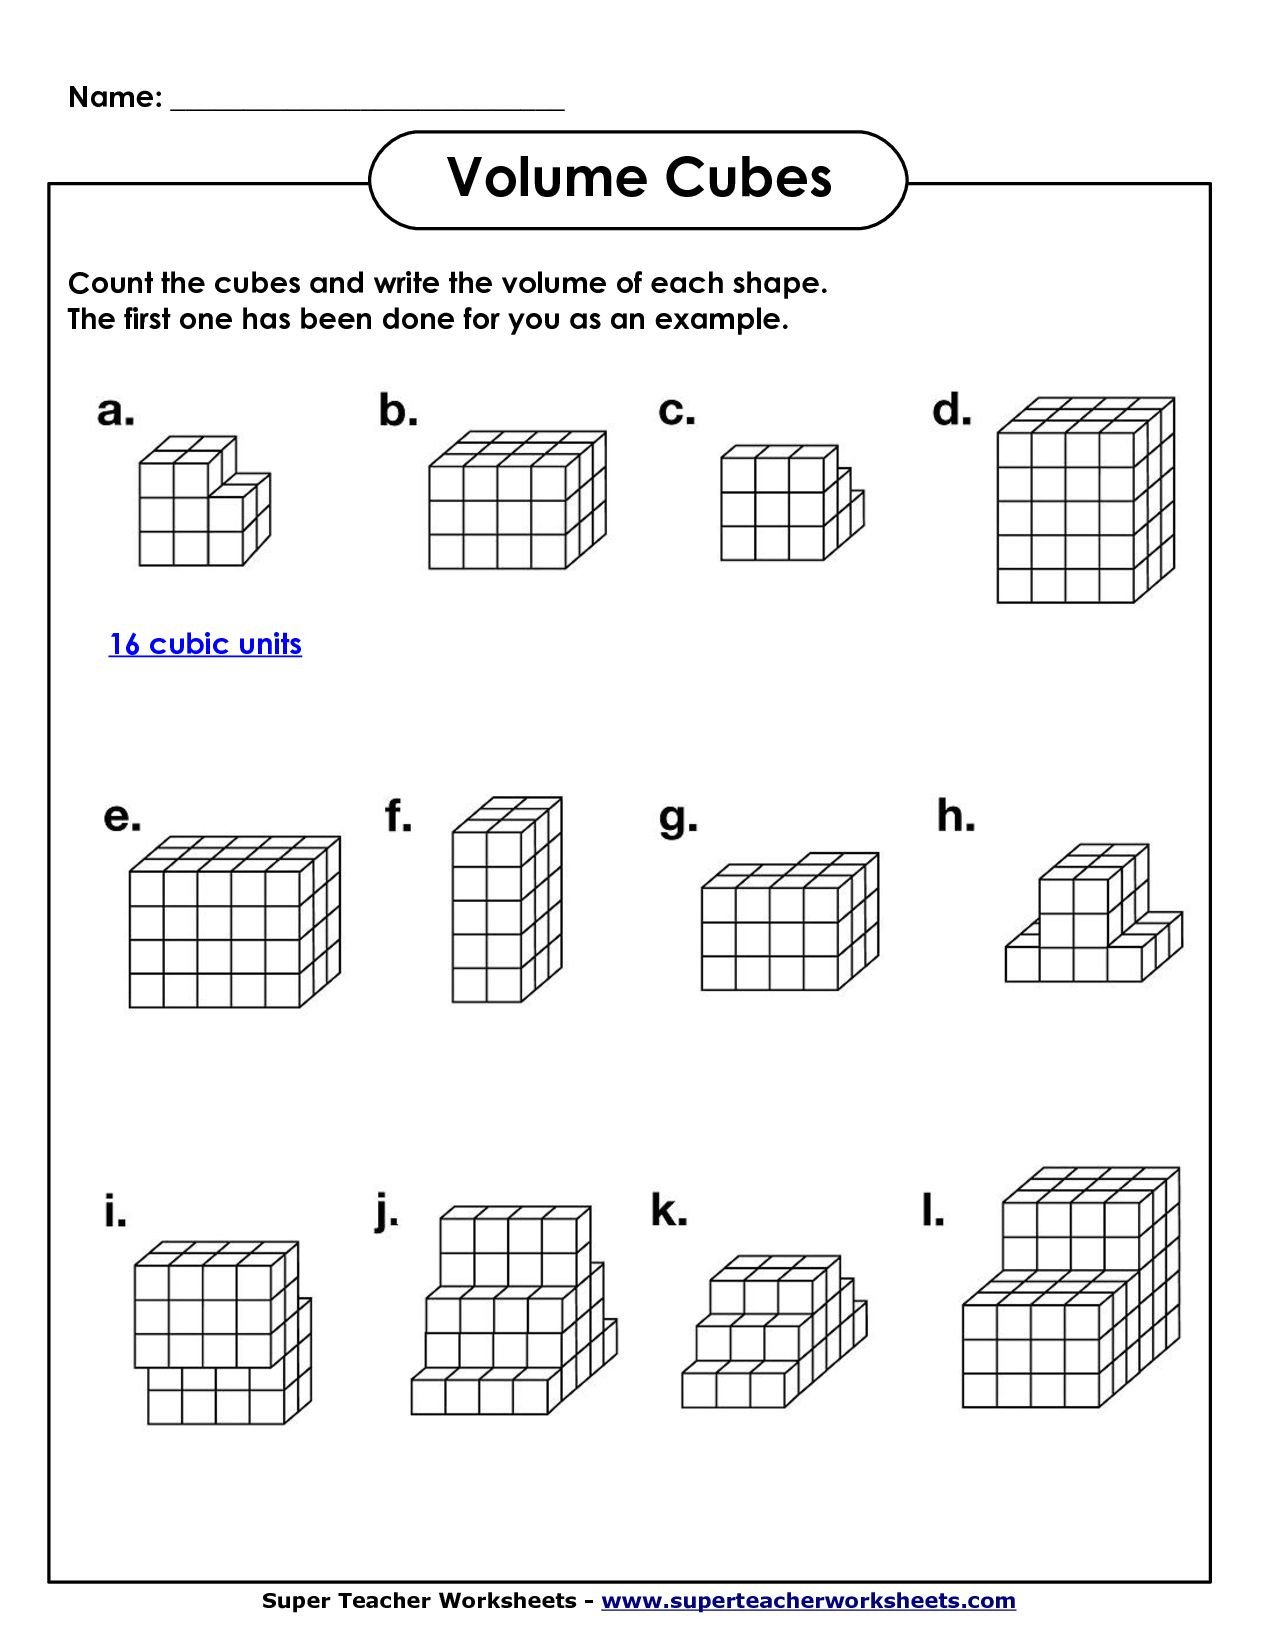 Measurement Volume Worksheets Image From Http Stoccdn Thumb orig Math Worksheets for Kids